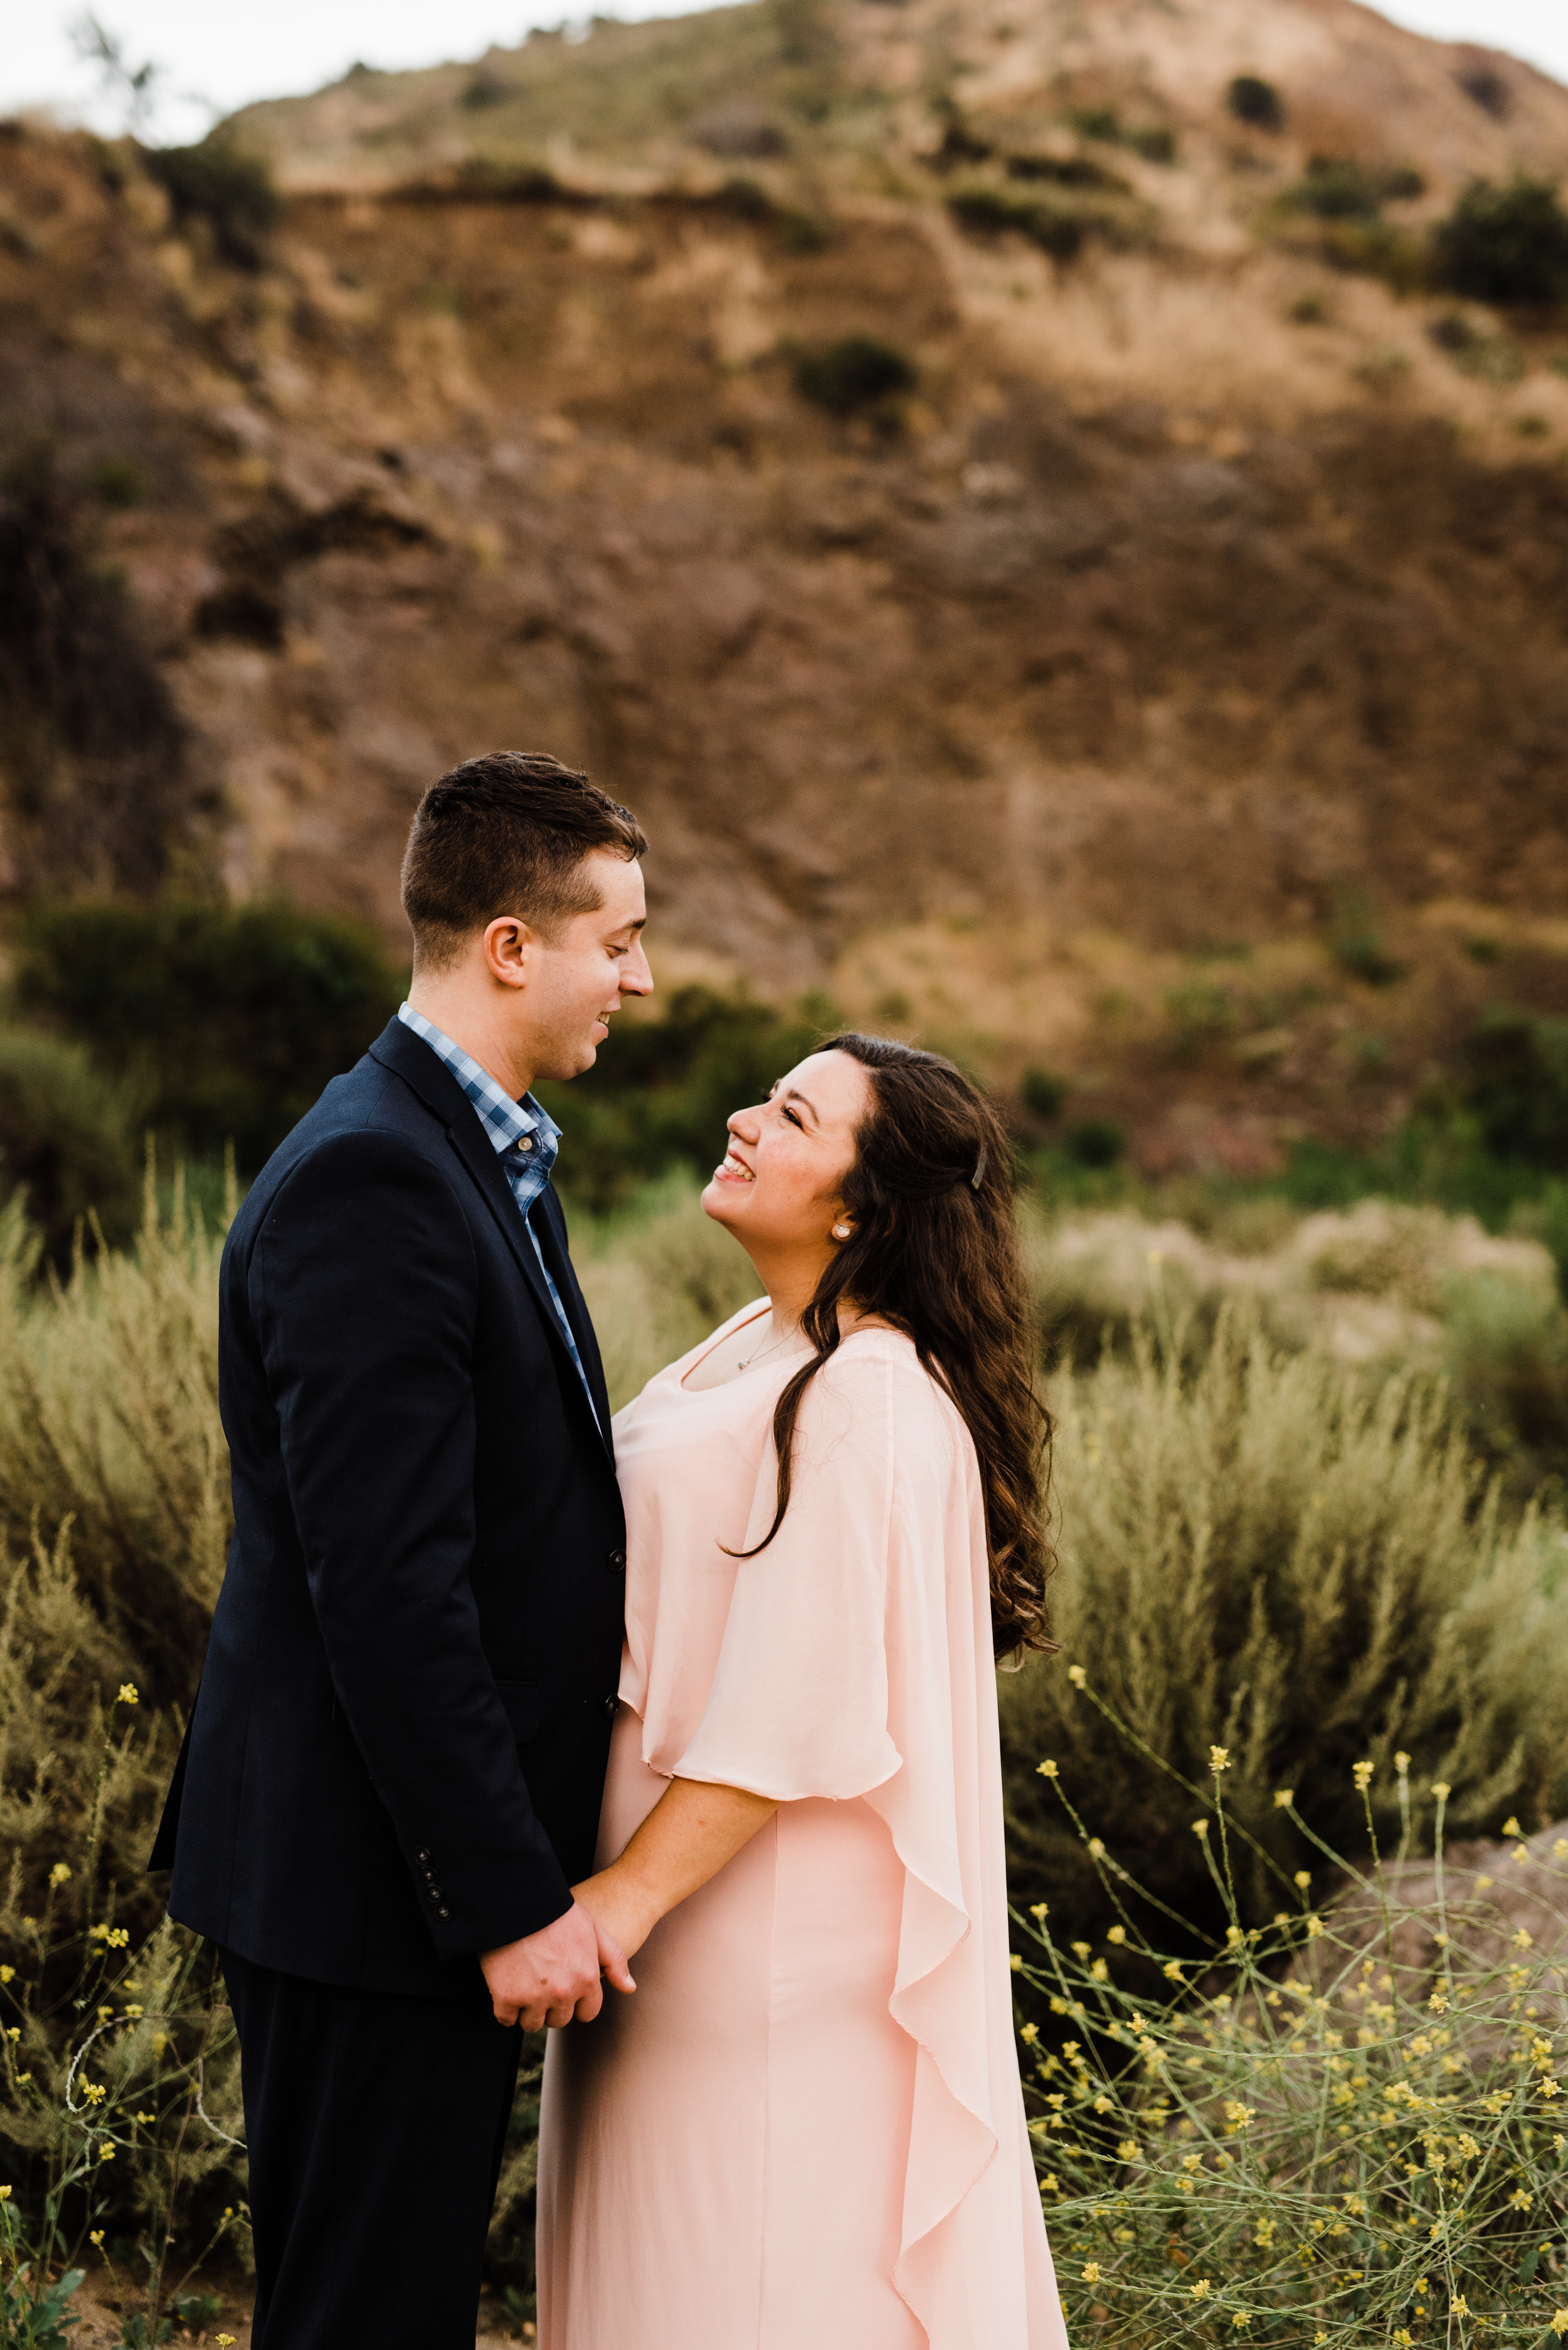 Fields, Wildflowers, and Trails - this couple explored it all at their adventurous LA engagement session